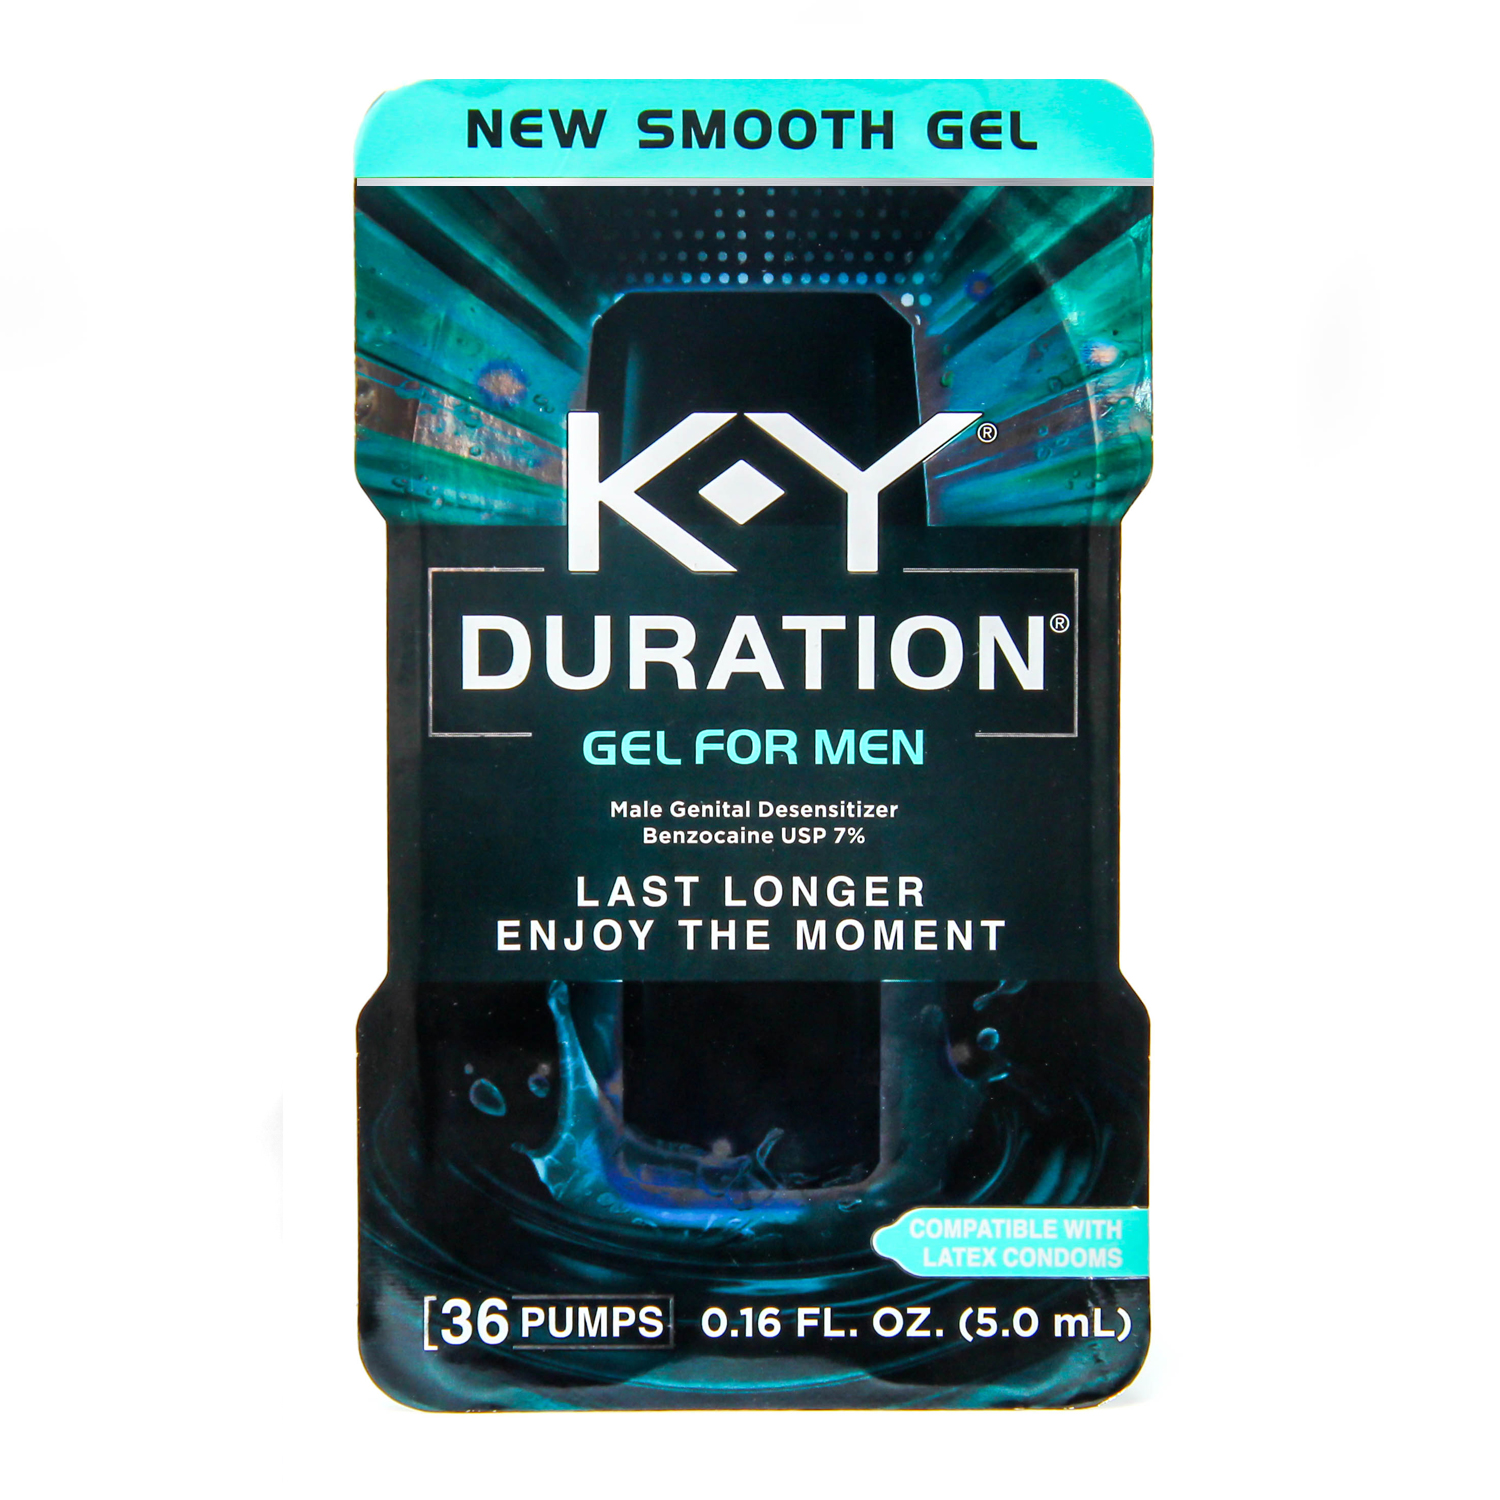 K-Y Duration Gel for Men (Condom Safe) - Last Longer & Enjoy The Moment, 36 pumps, Male Genital Desensitizer 0.16 oz